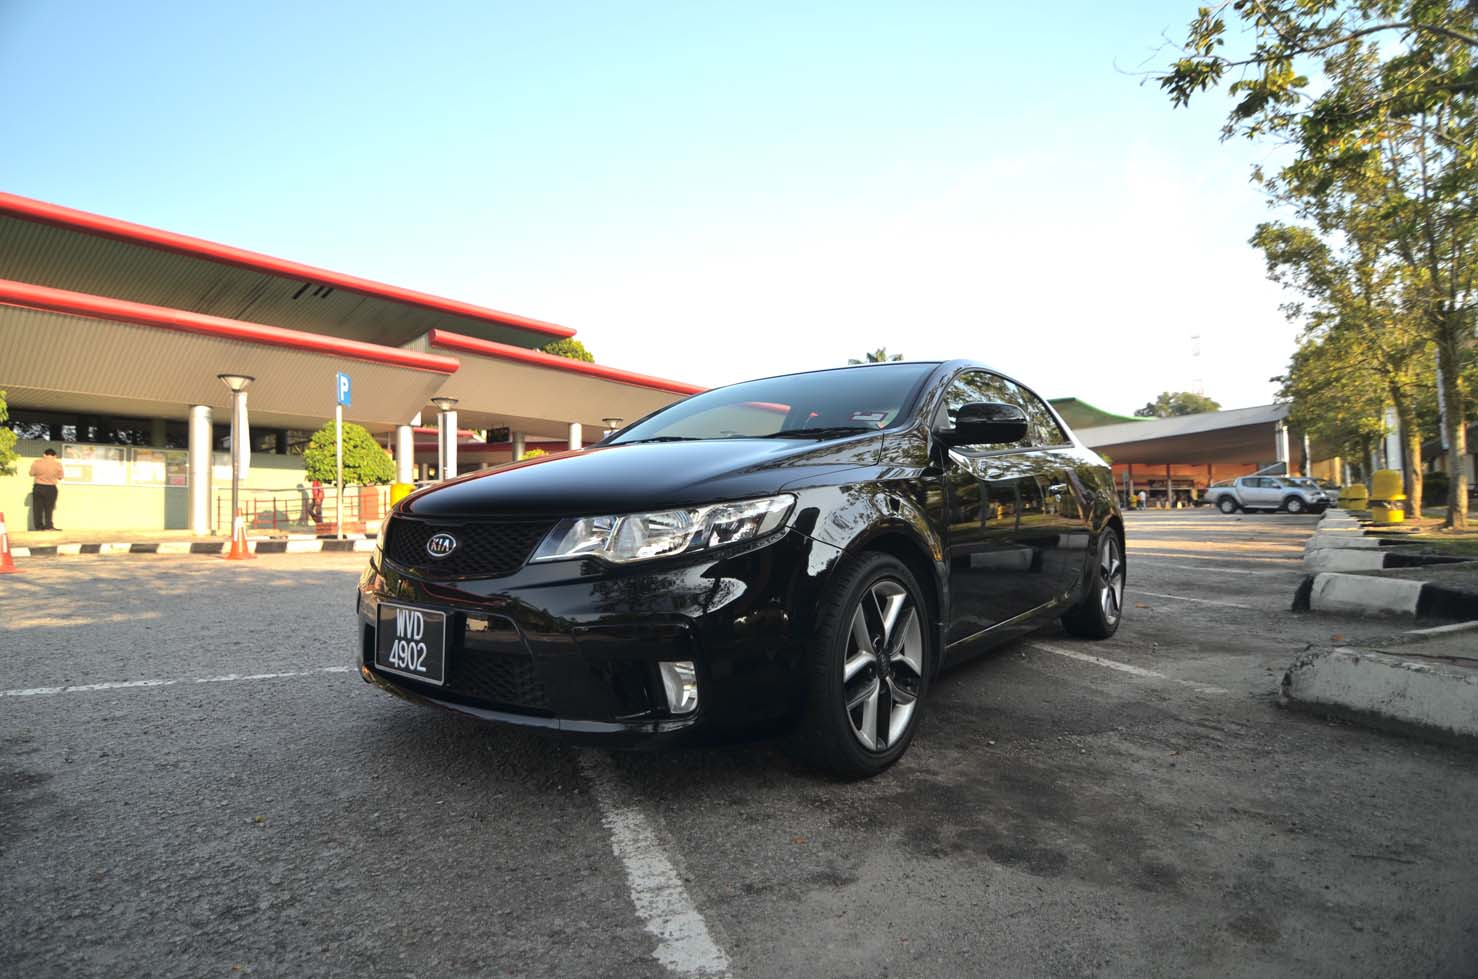 The Kia Koup The Most Affordable Coupe in Malaysia kensomuse